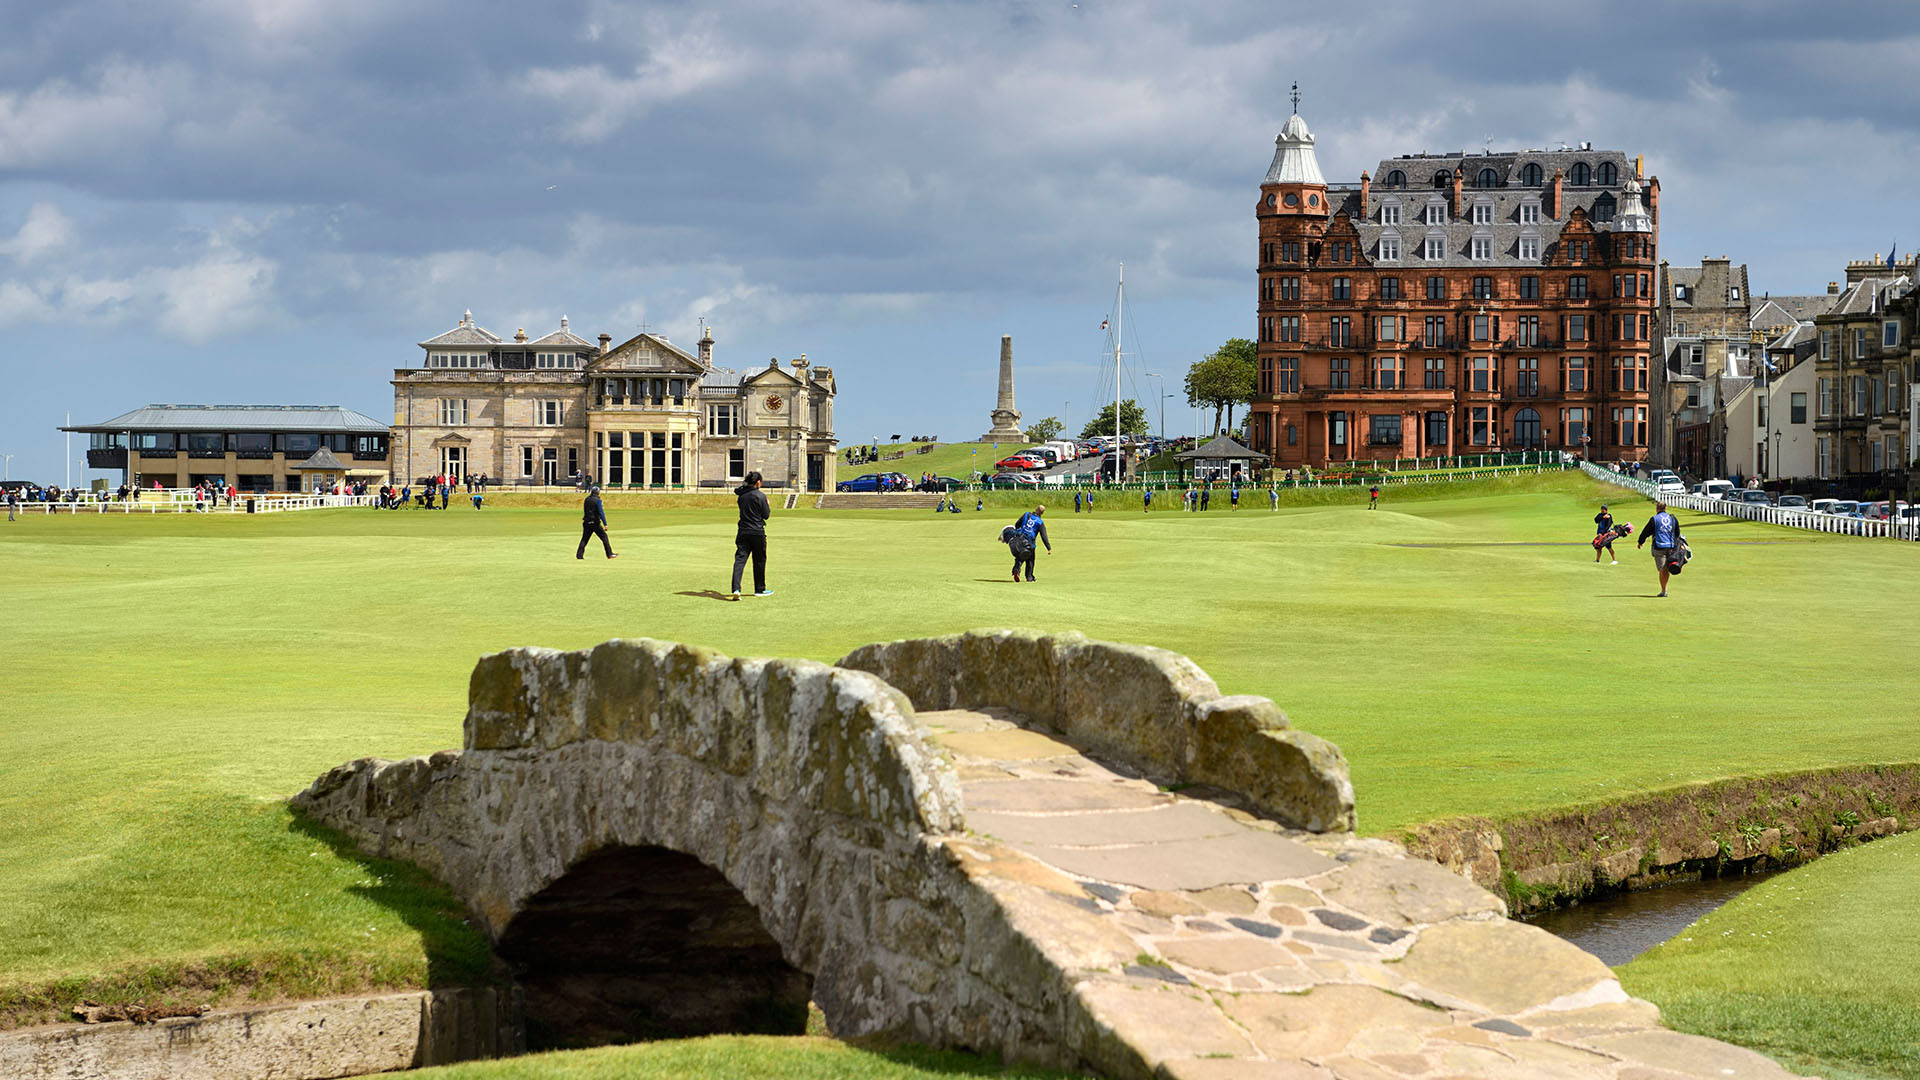 Whiskey, Mussels, and World-Class Golf: The 4-Day Weekend in Edinburgh